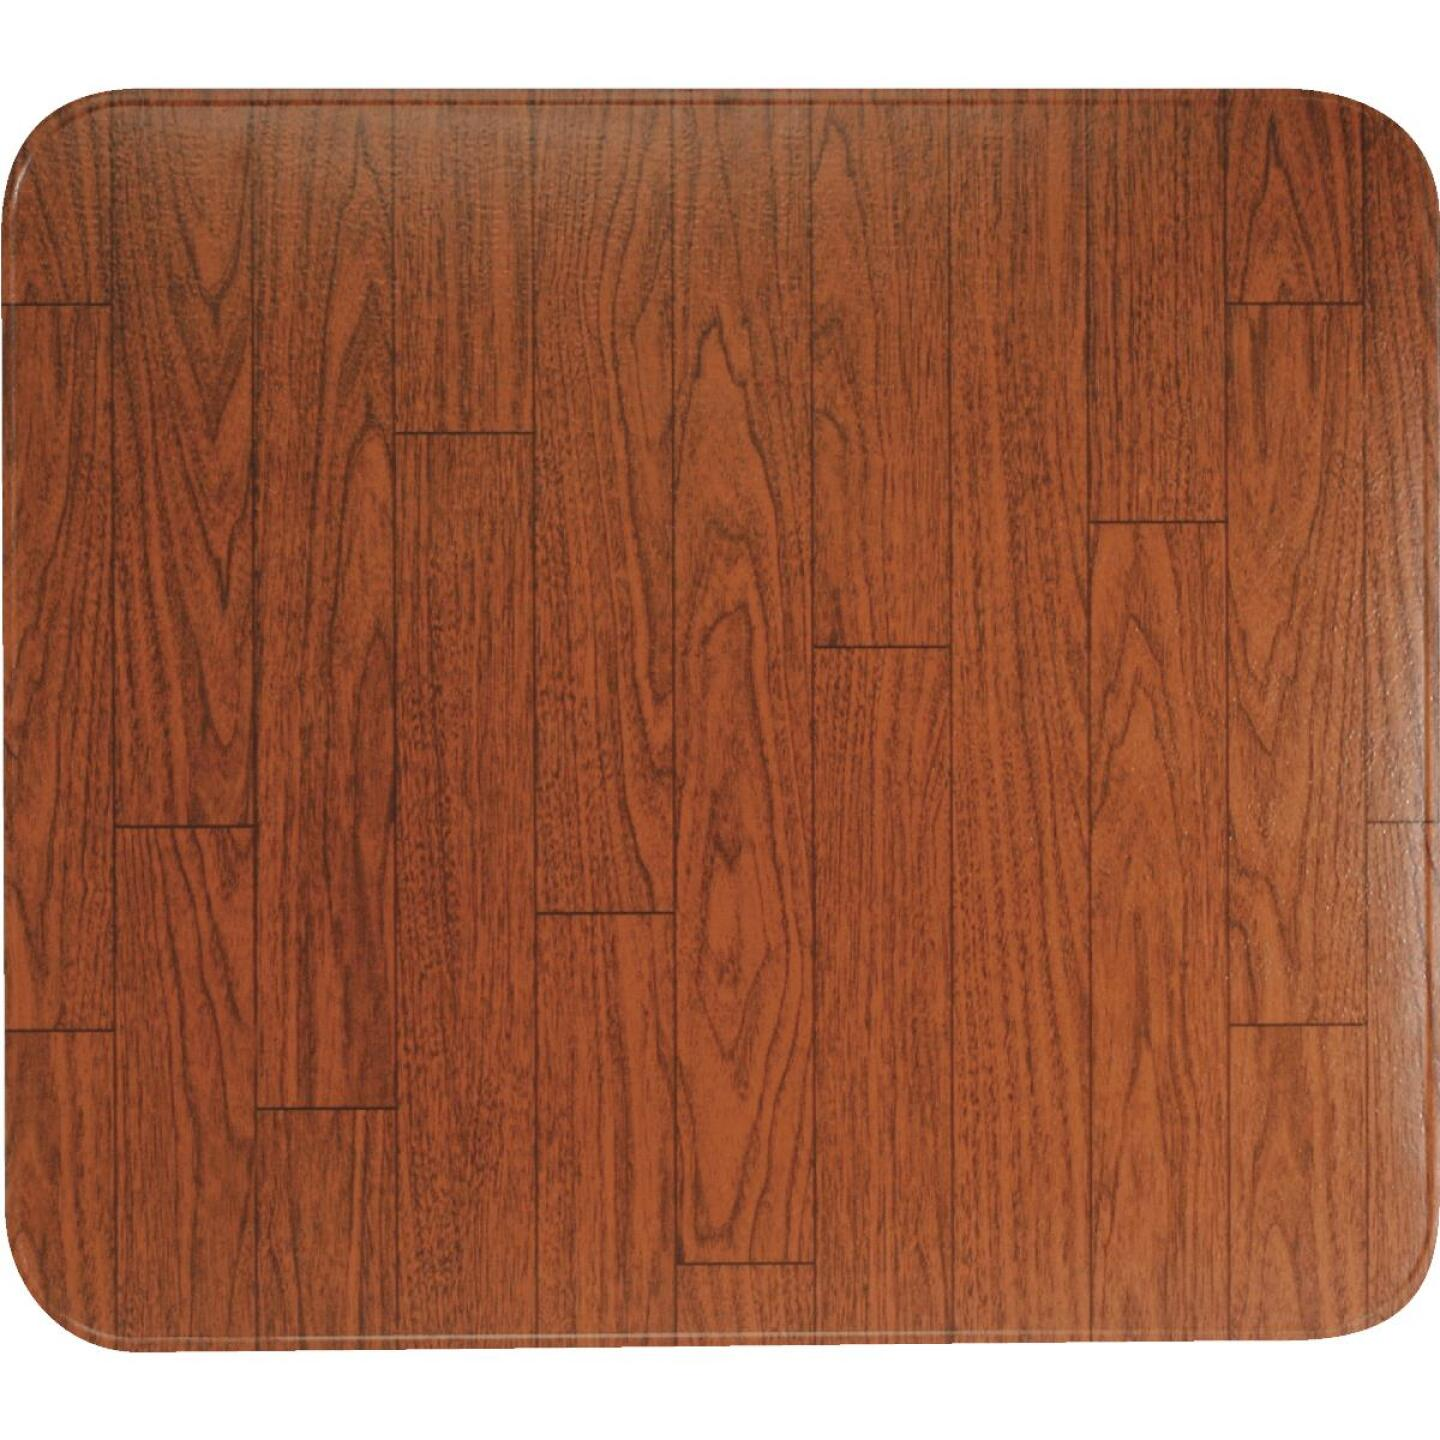 HY-C 36 In. x 52 In. Type 2 Stove Board Image 1